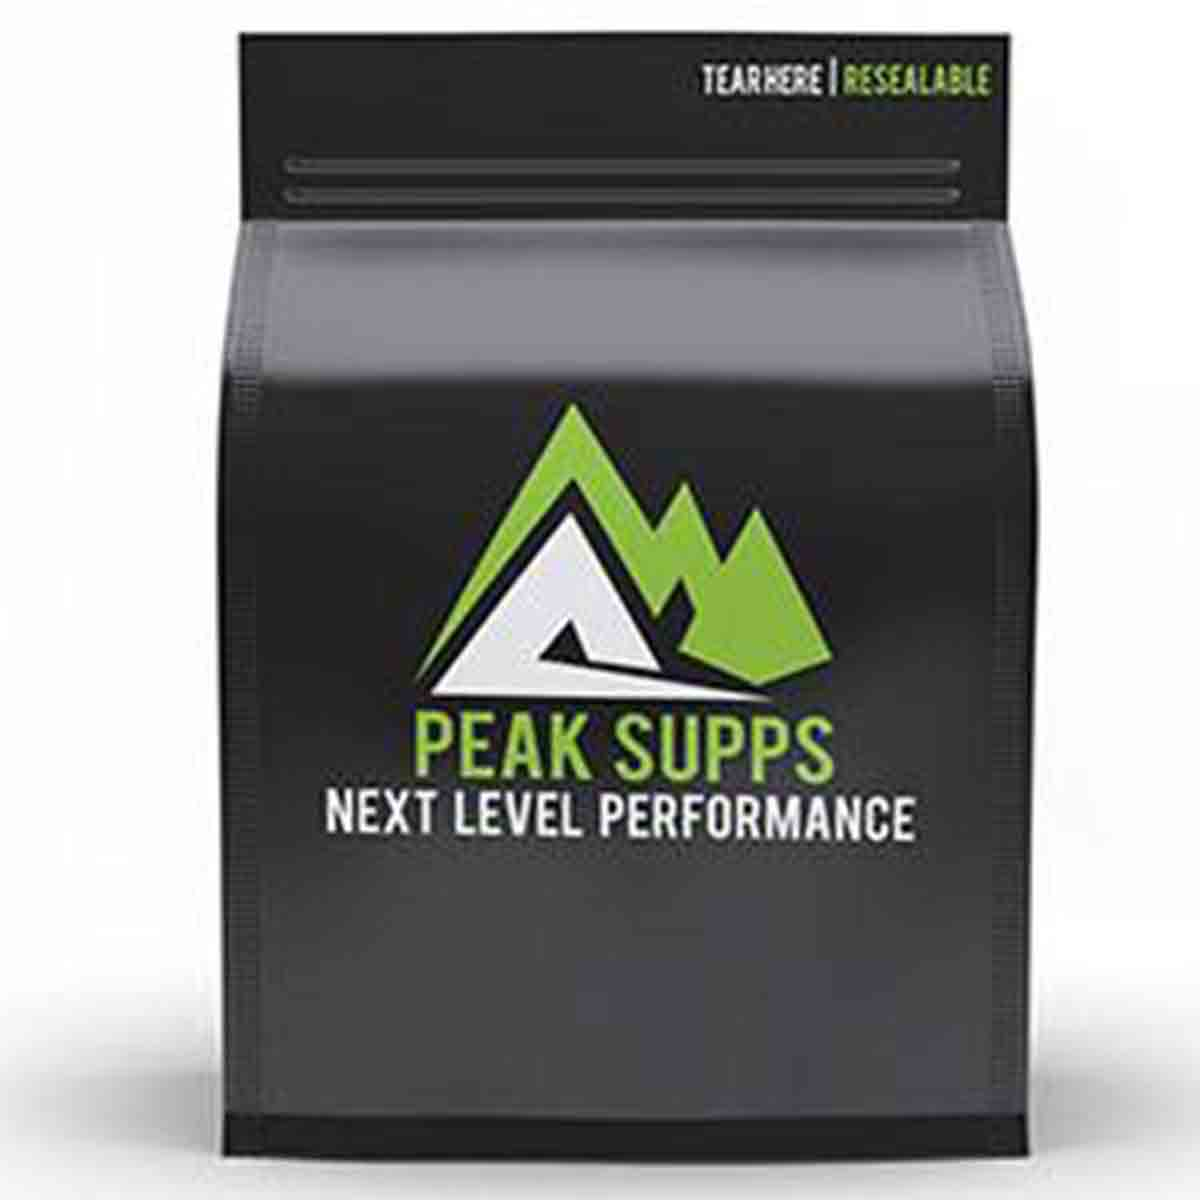 Peak Supps Eliminate